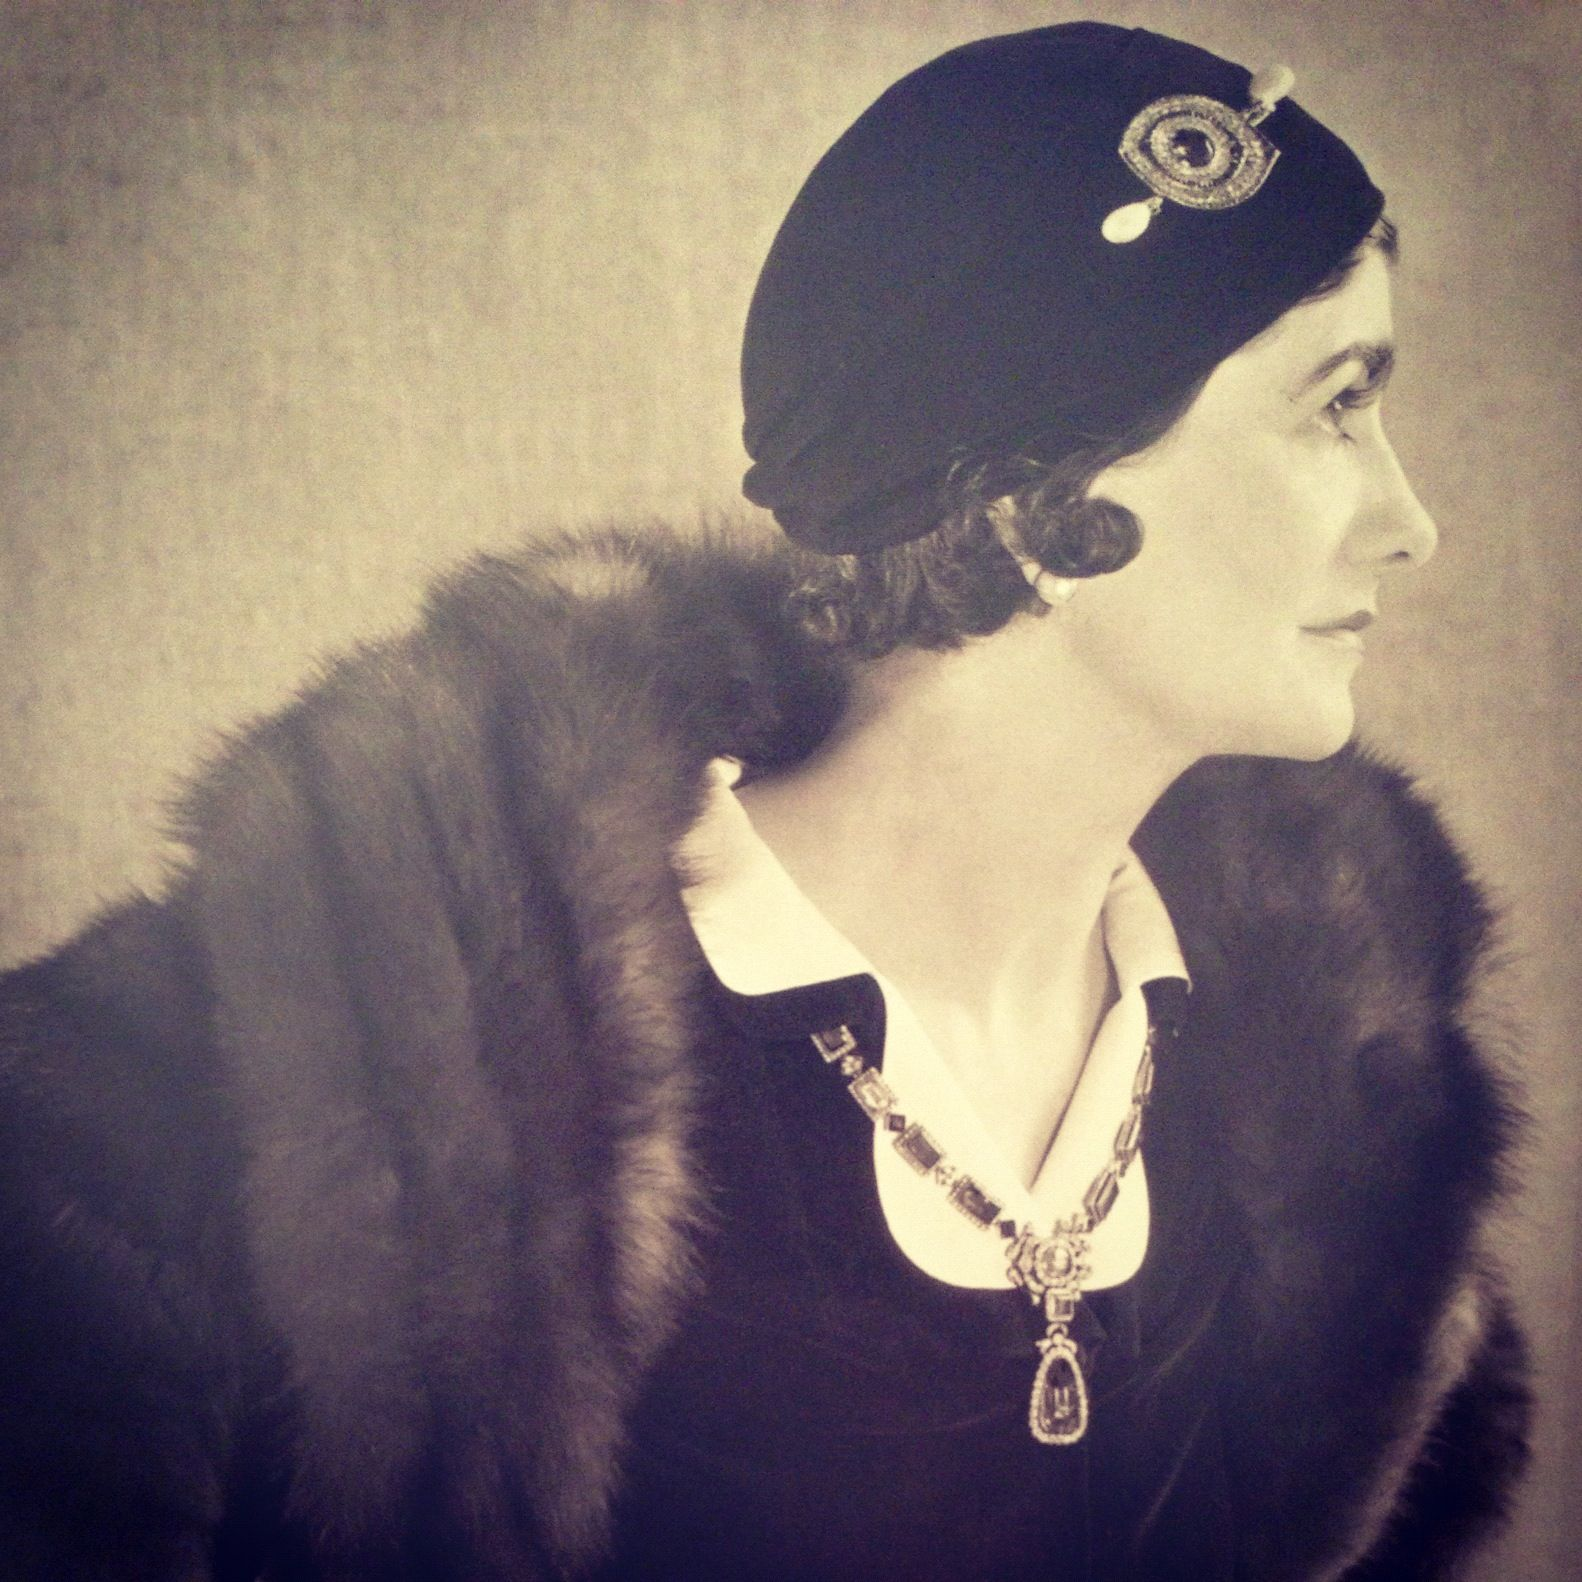 Coco Chanel, her fashion empire, until her death, brought in over $160 million dollars a year. introduces the bobbed hair style, pants for women, skiing accessories, she eliminated the use of the corset from women's fashion, added the use of knit jersey and unveiled the women's bathing suit.